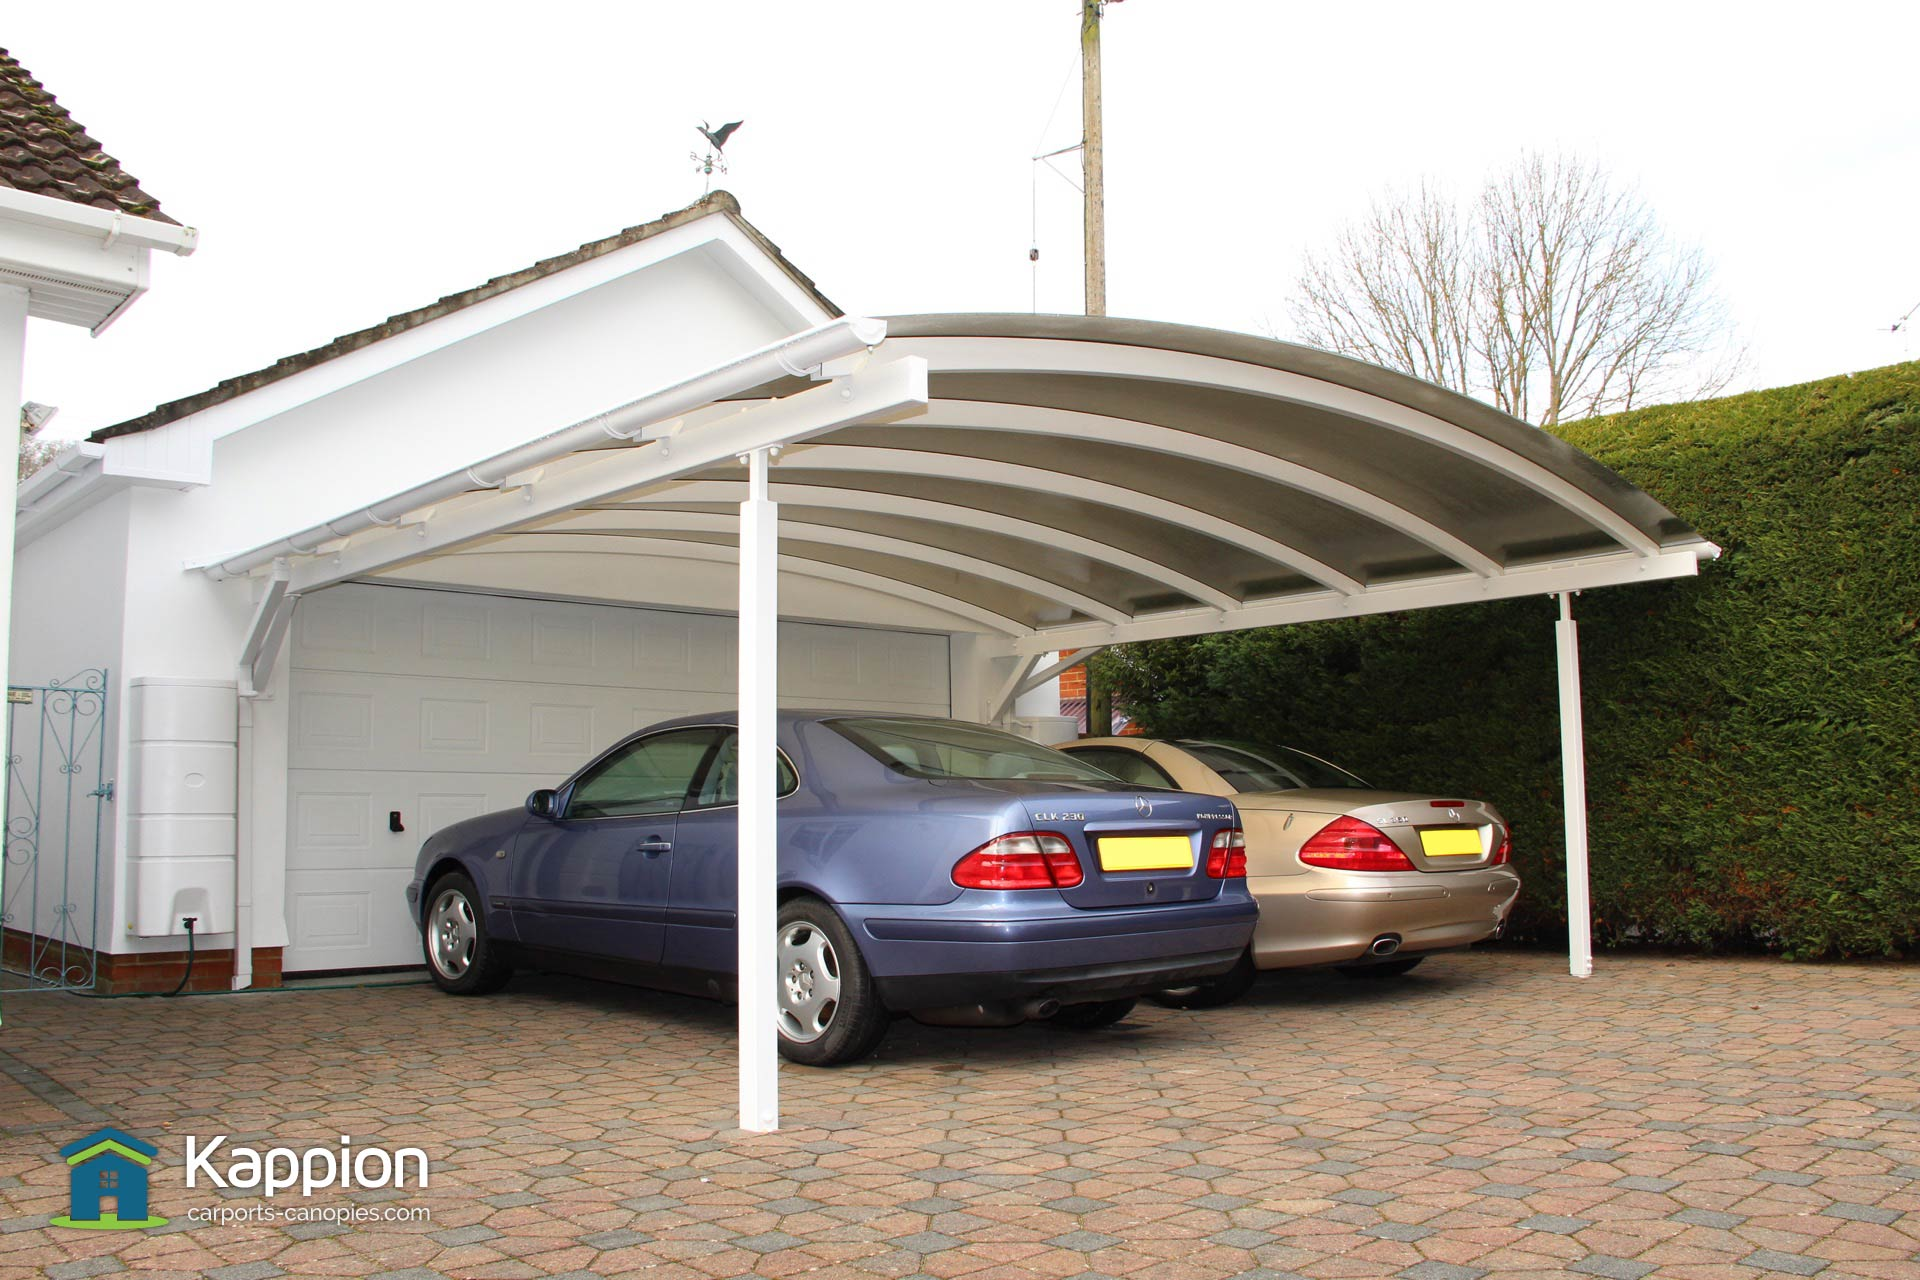 double carport the ultimate two car canopy kappion carports canopies. Black Bedroom Furniture Sets. Home Design Ideas